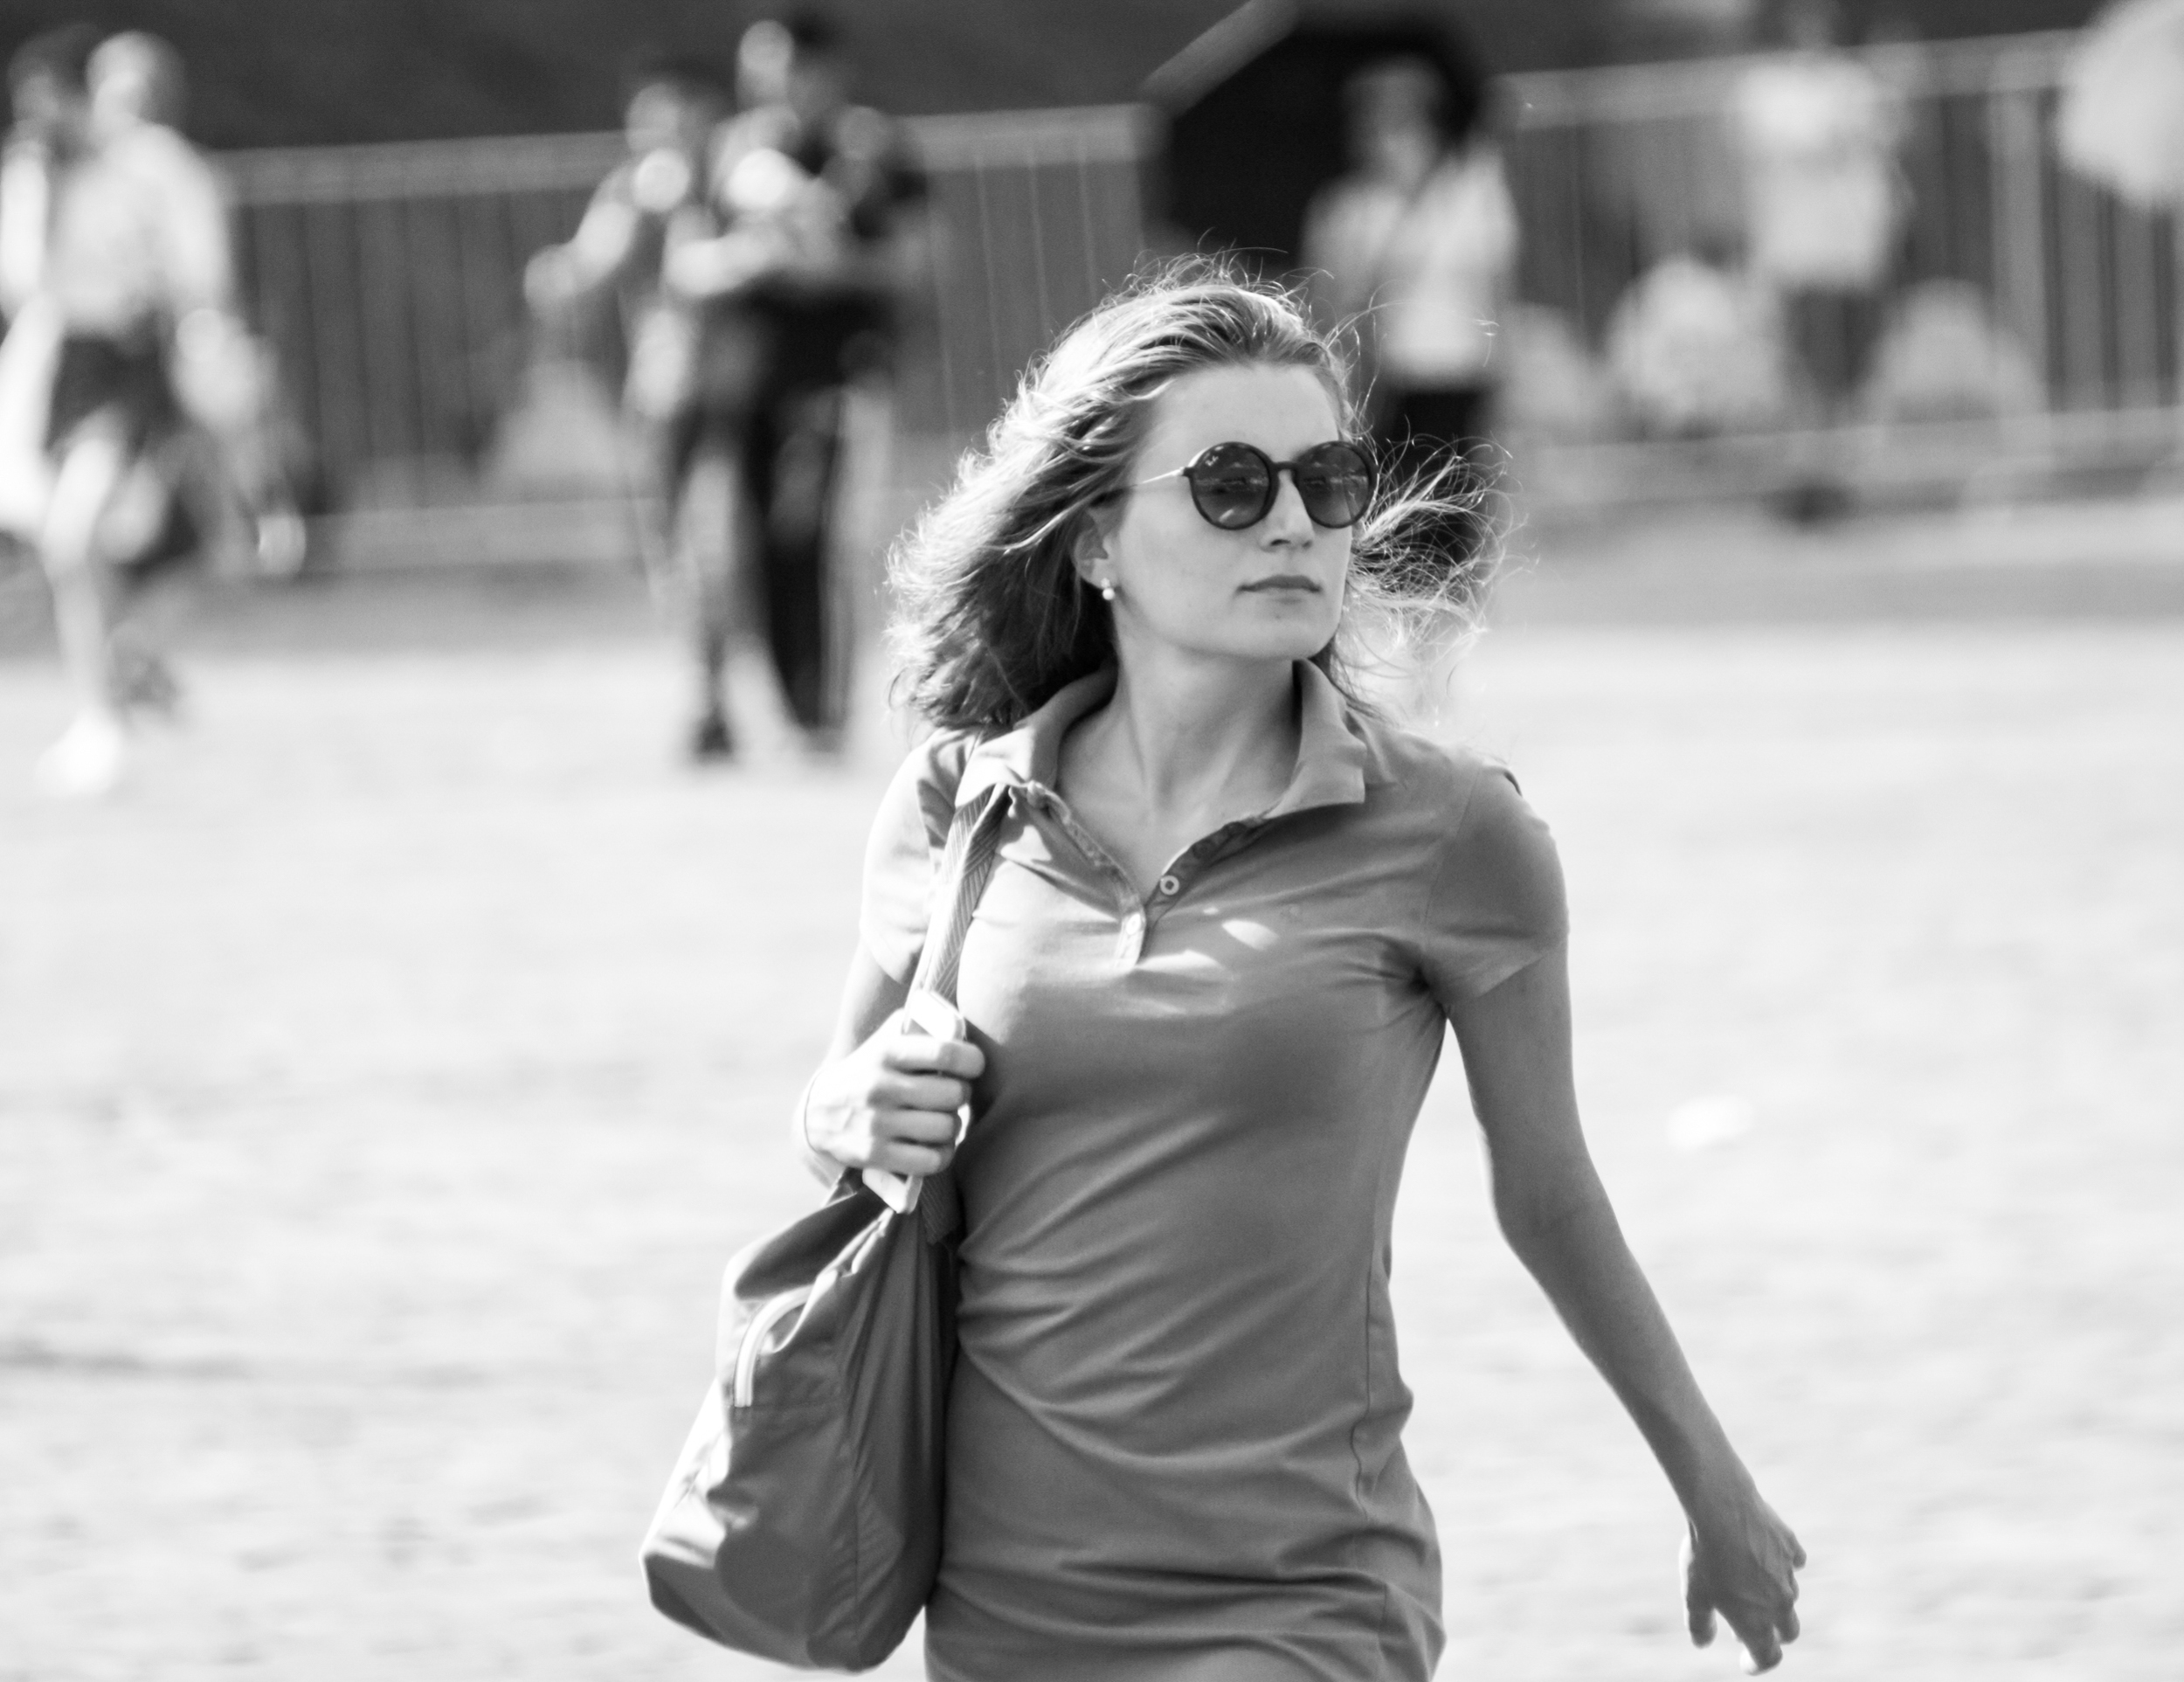 Girl Moscow 2016